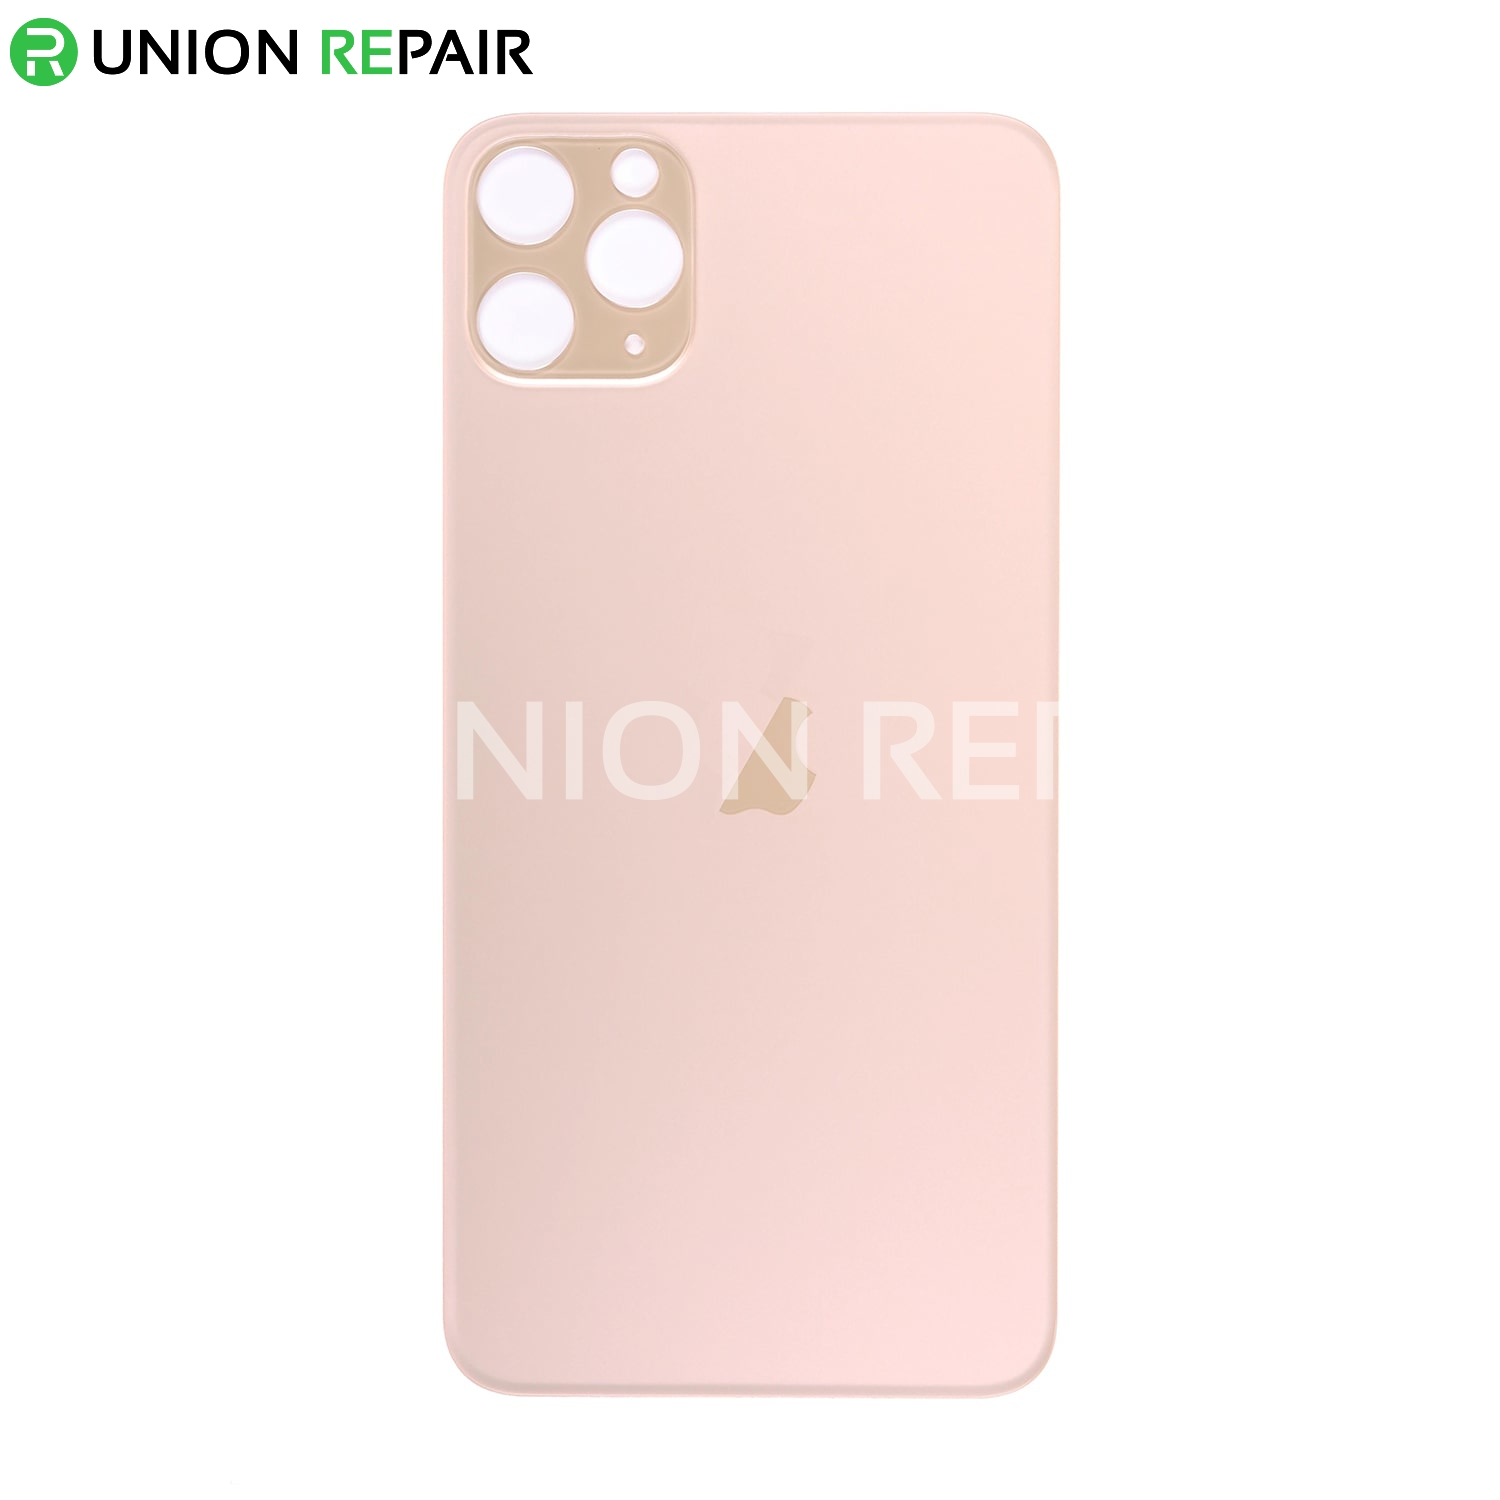 Replacement for iPhone 11 Pro Back Cover - Gold